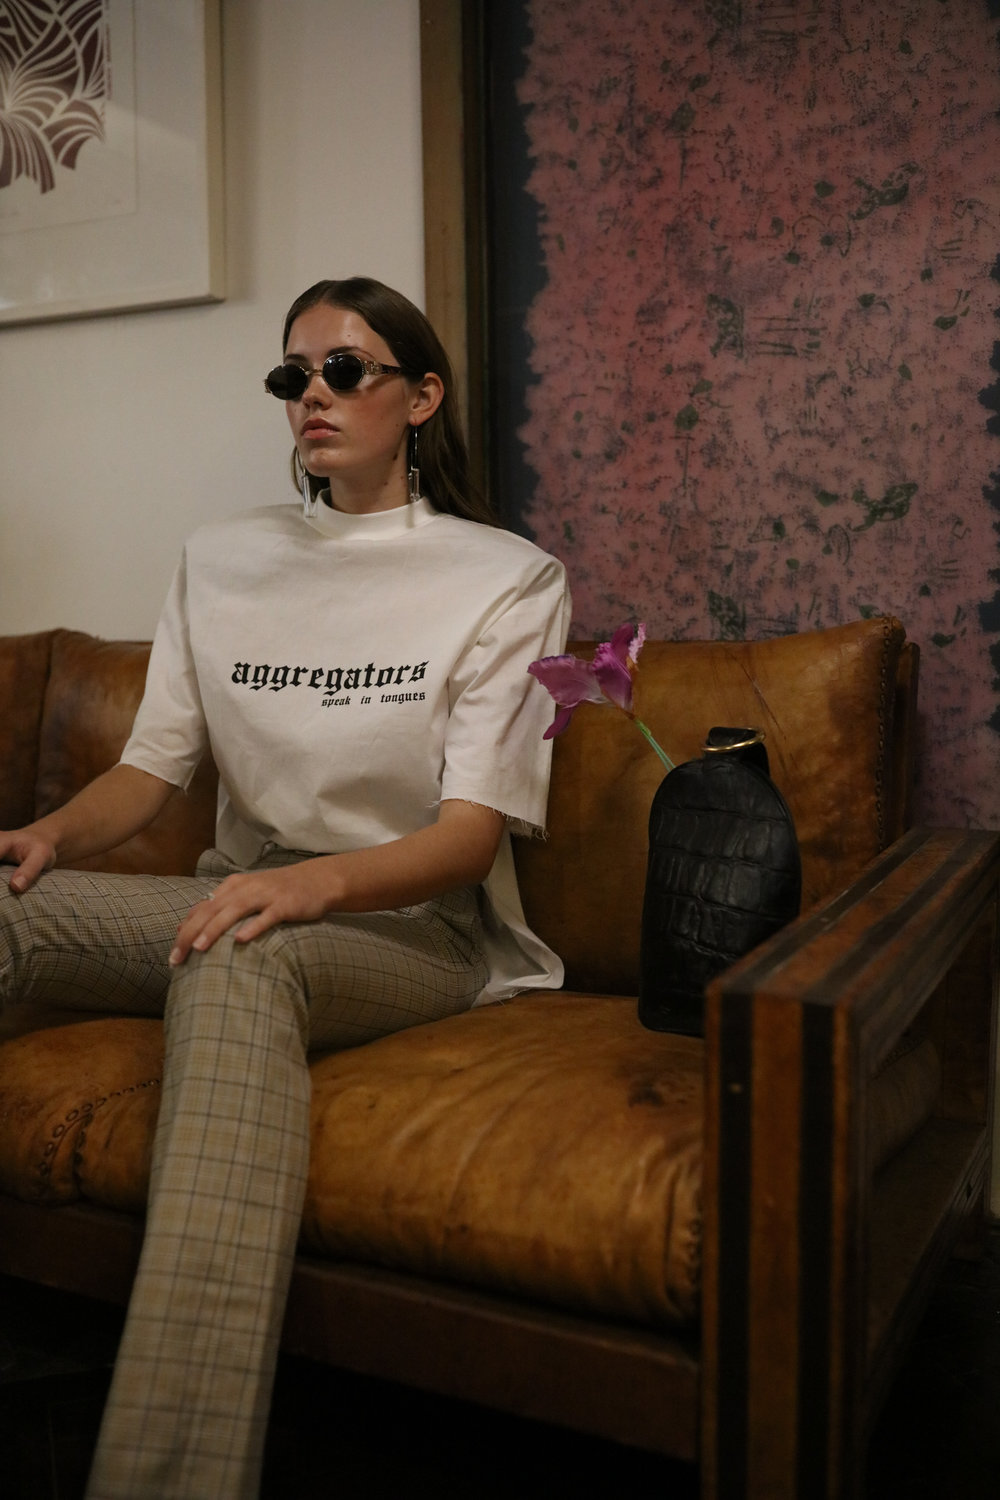 Sarah wears Samantha Diorio & Jake Paraskeva 'Aggregators Speak in Tongues' T-shirt